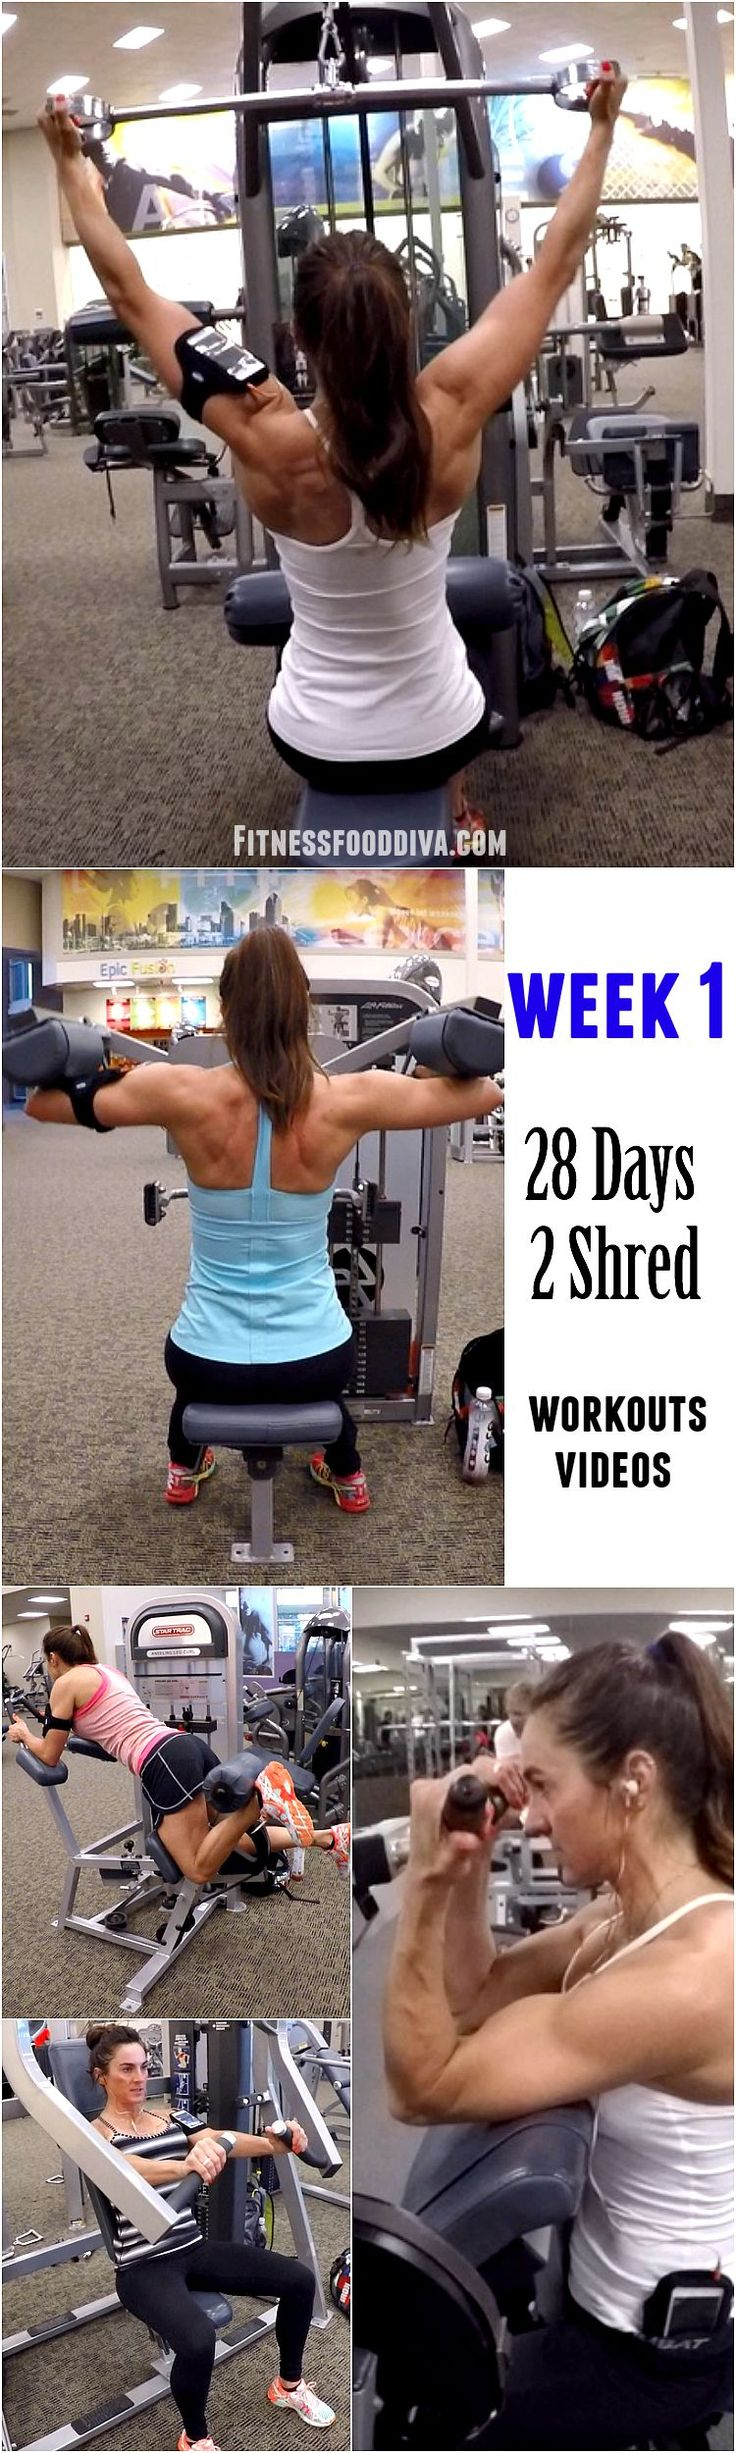 Week 1: 28 Days 2 Shred workout/videos